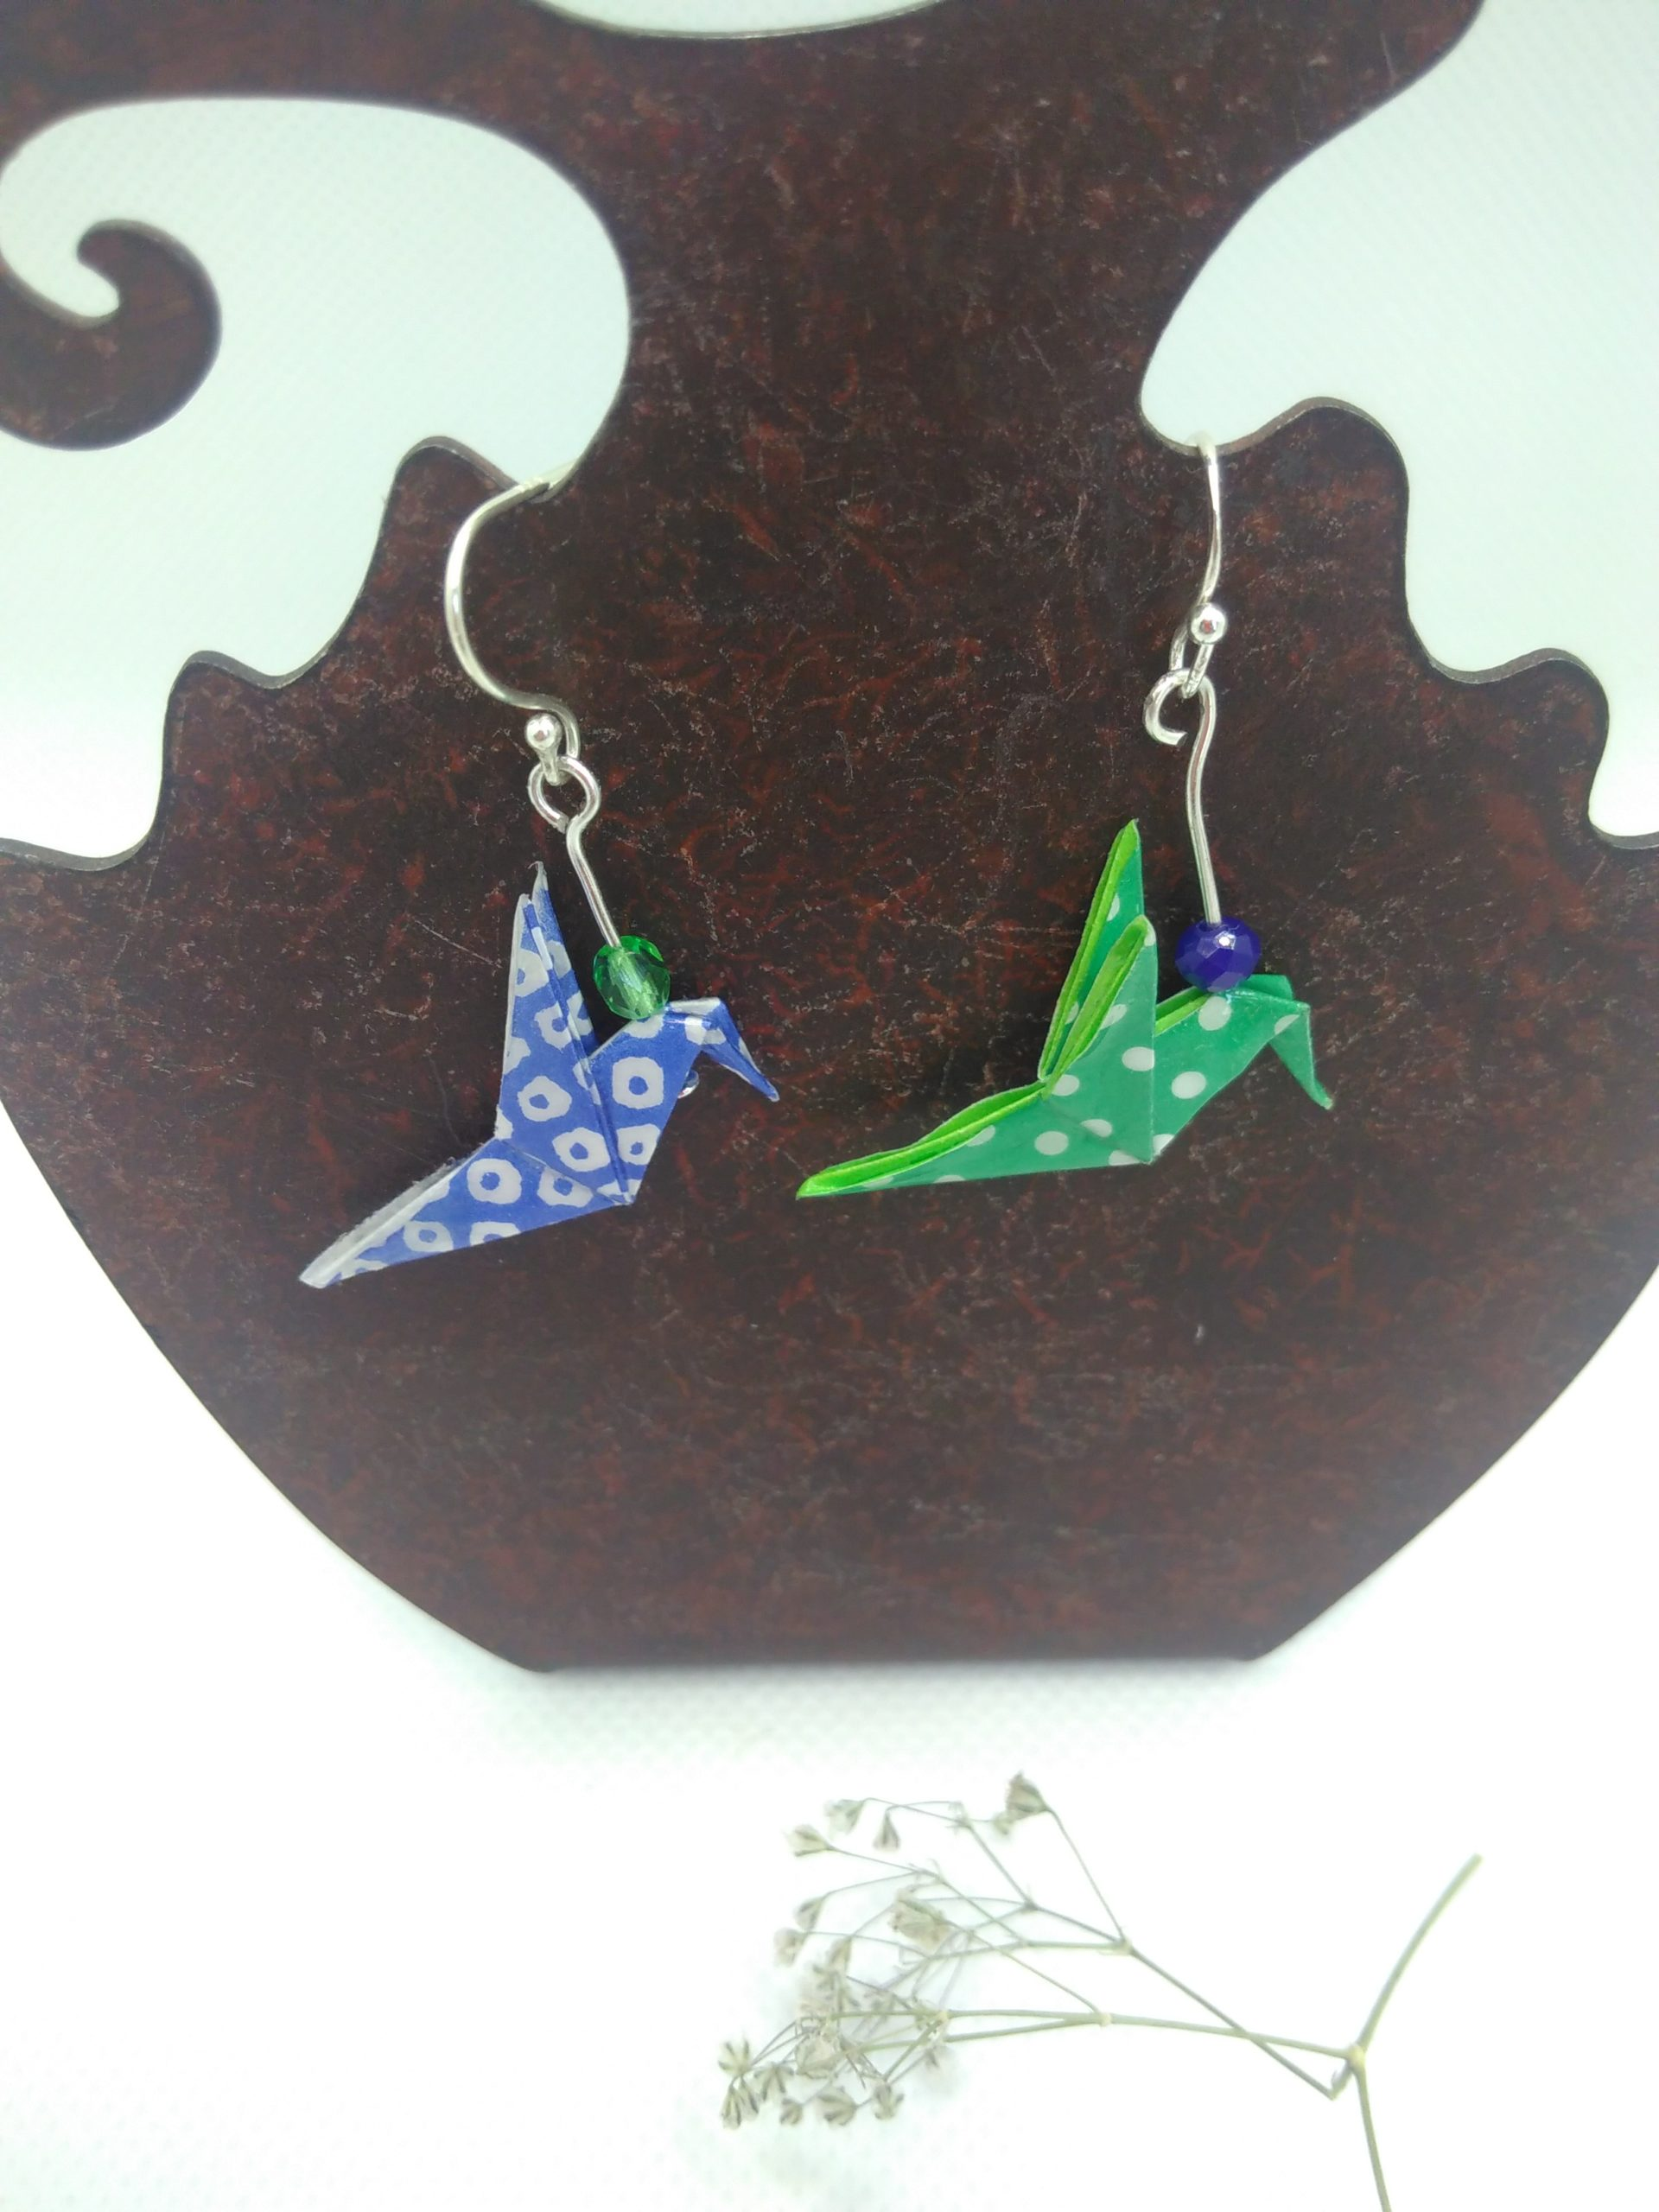 BOOco3 - 20€ - Boucles d'Oreilles Origami colombe - Indisponible